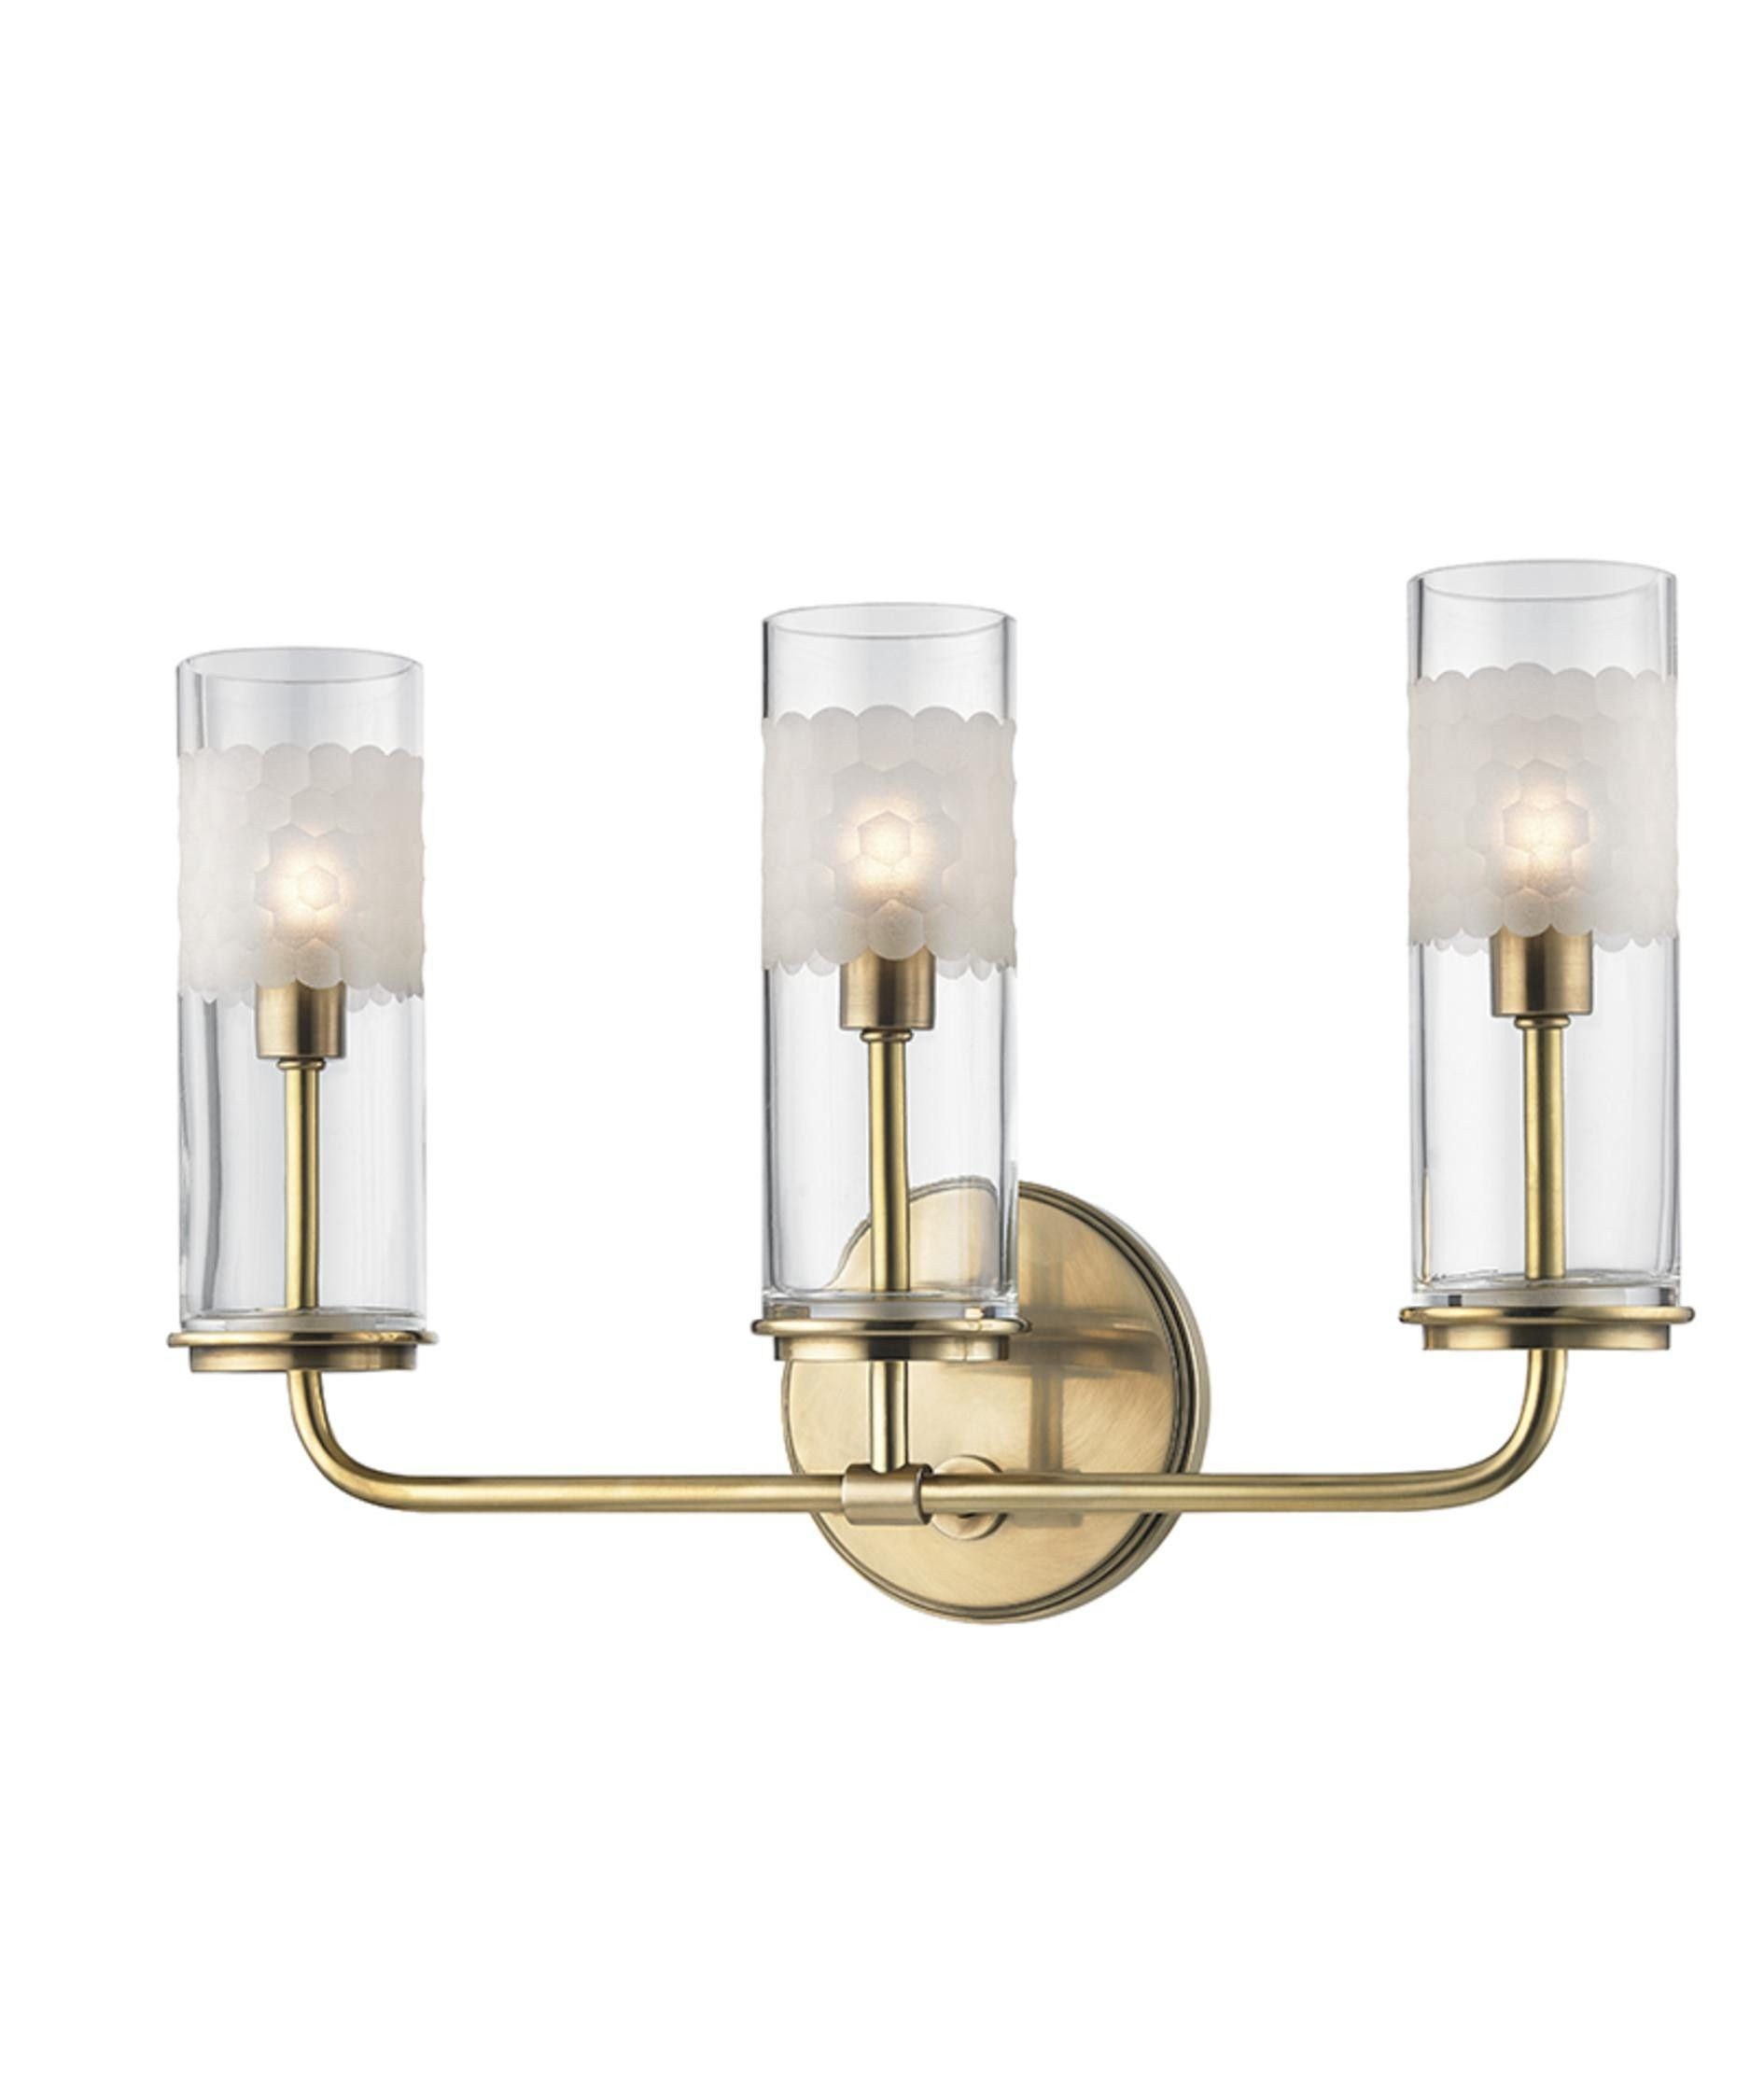 Lighting Bathroom Sconce Modern Sconce Hanging Chandeliers - Antique brass bathroom sconces